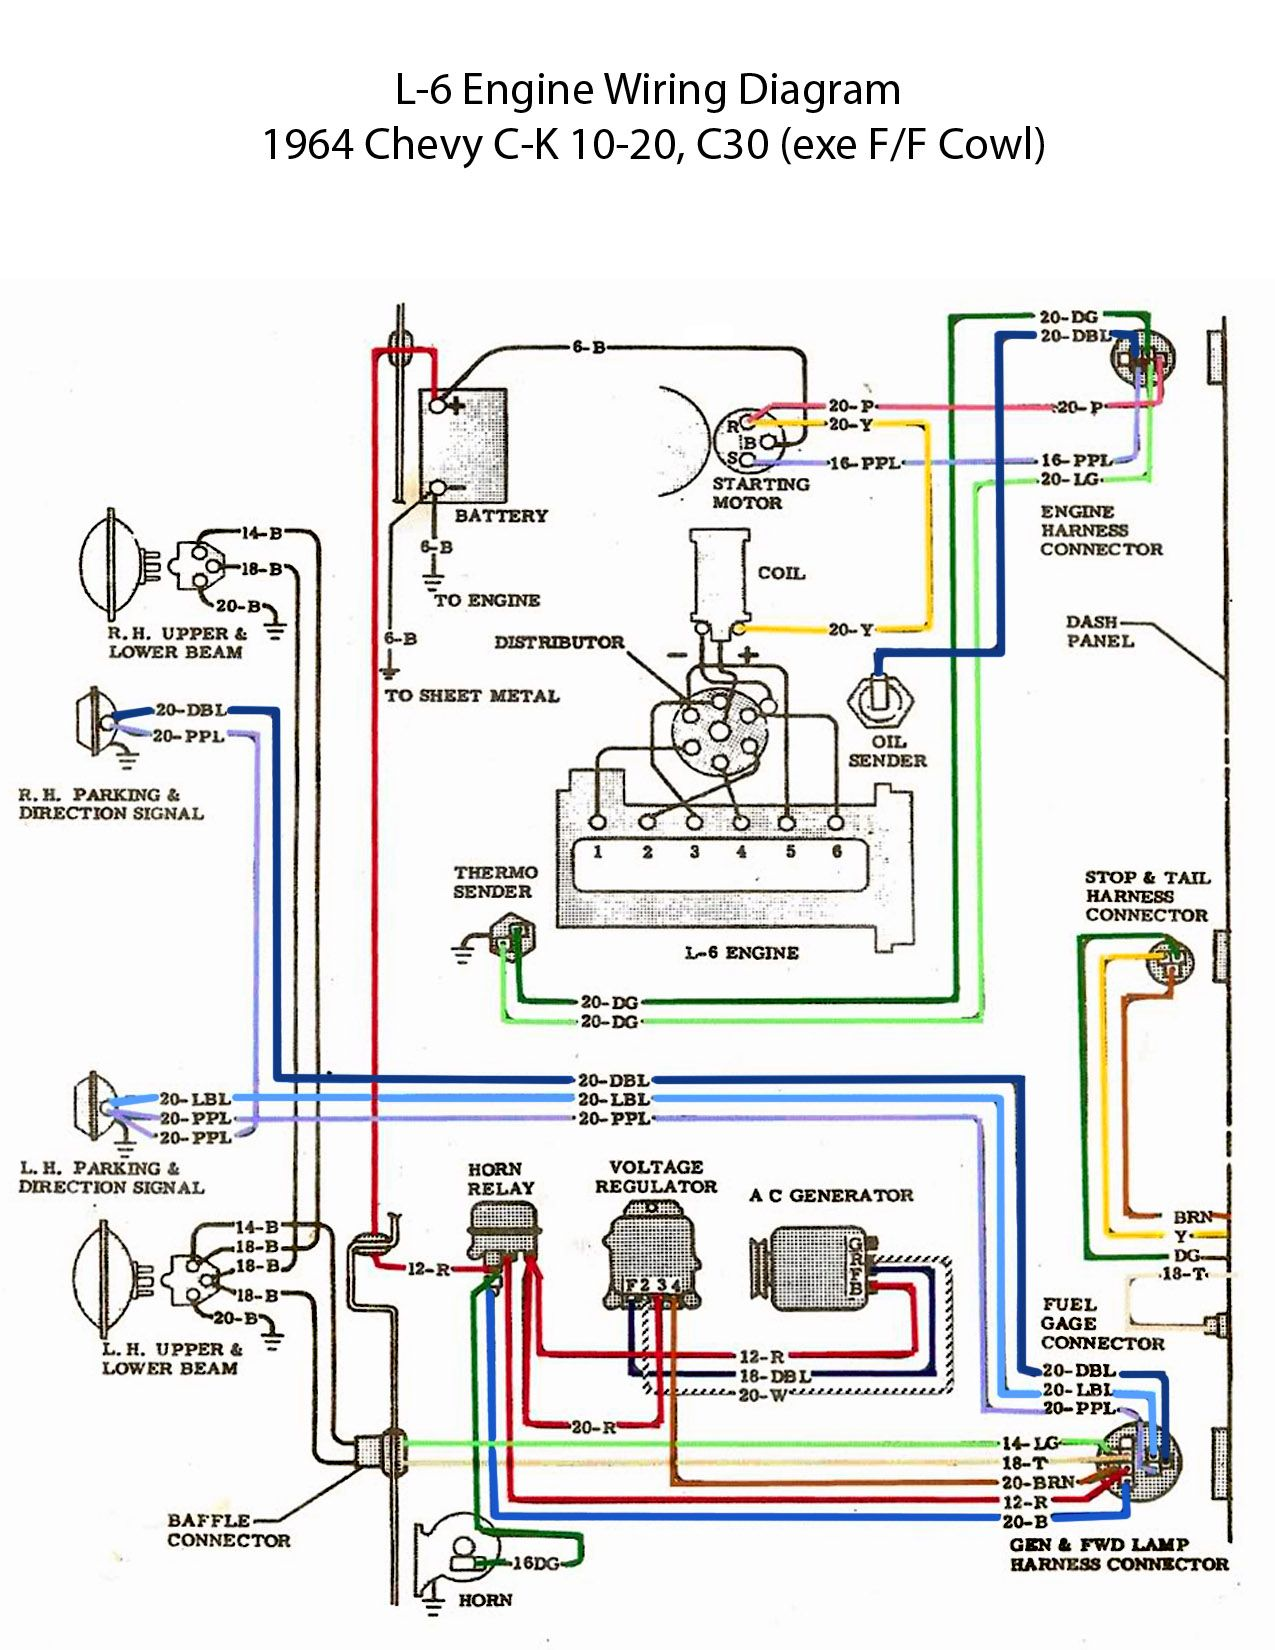 electric l 6 engine wiring diagram 60s chevy c10 wiring 3 wire pickup wiring diagram 1954 international pickup wiring diagram [ 1275 x 1650 Pixel ]